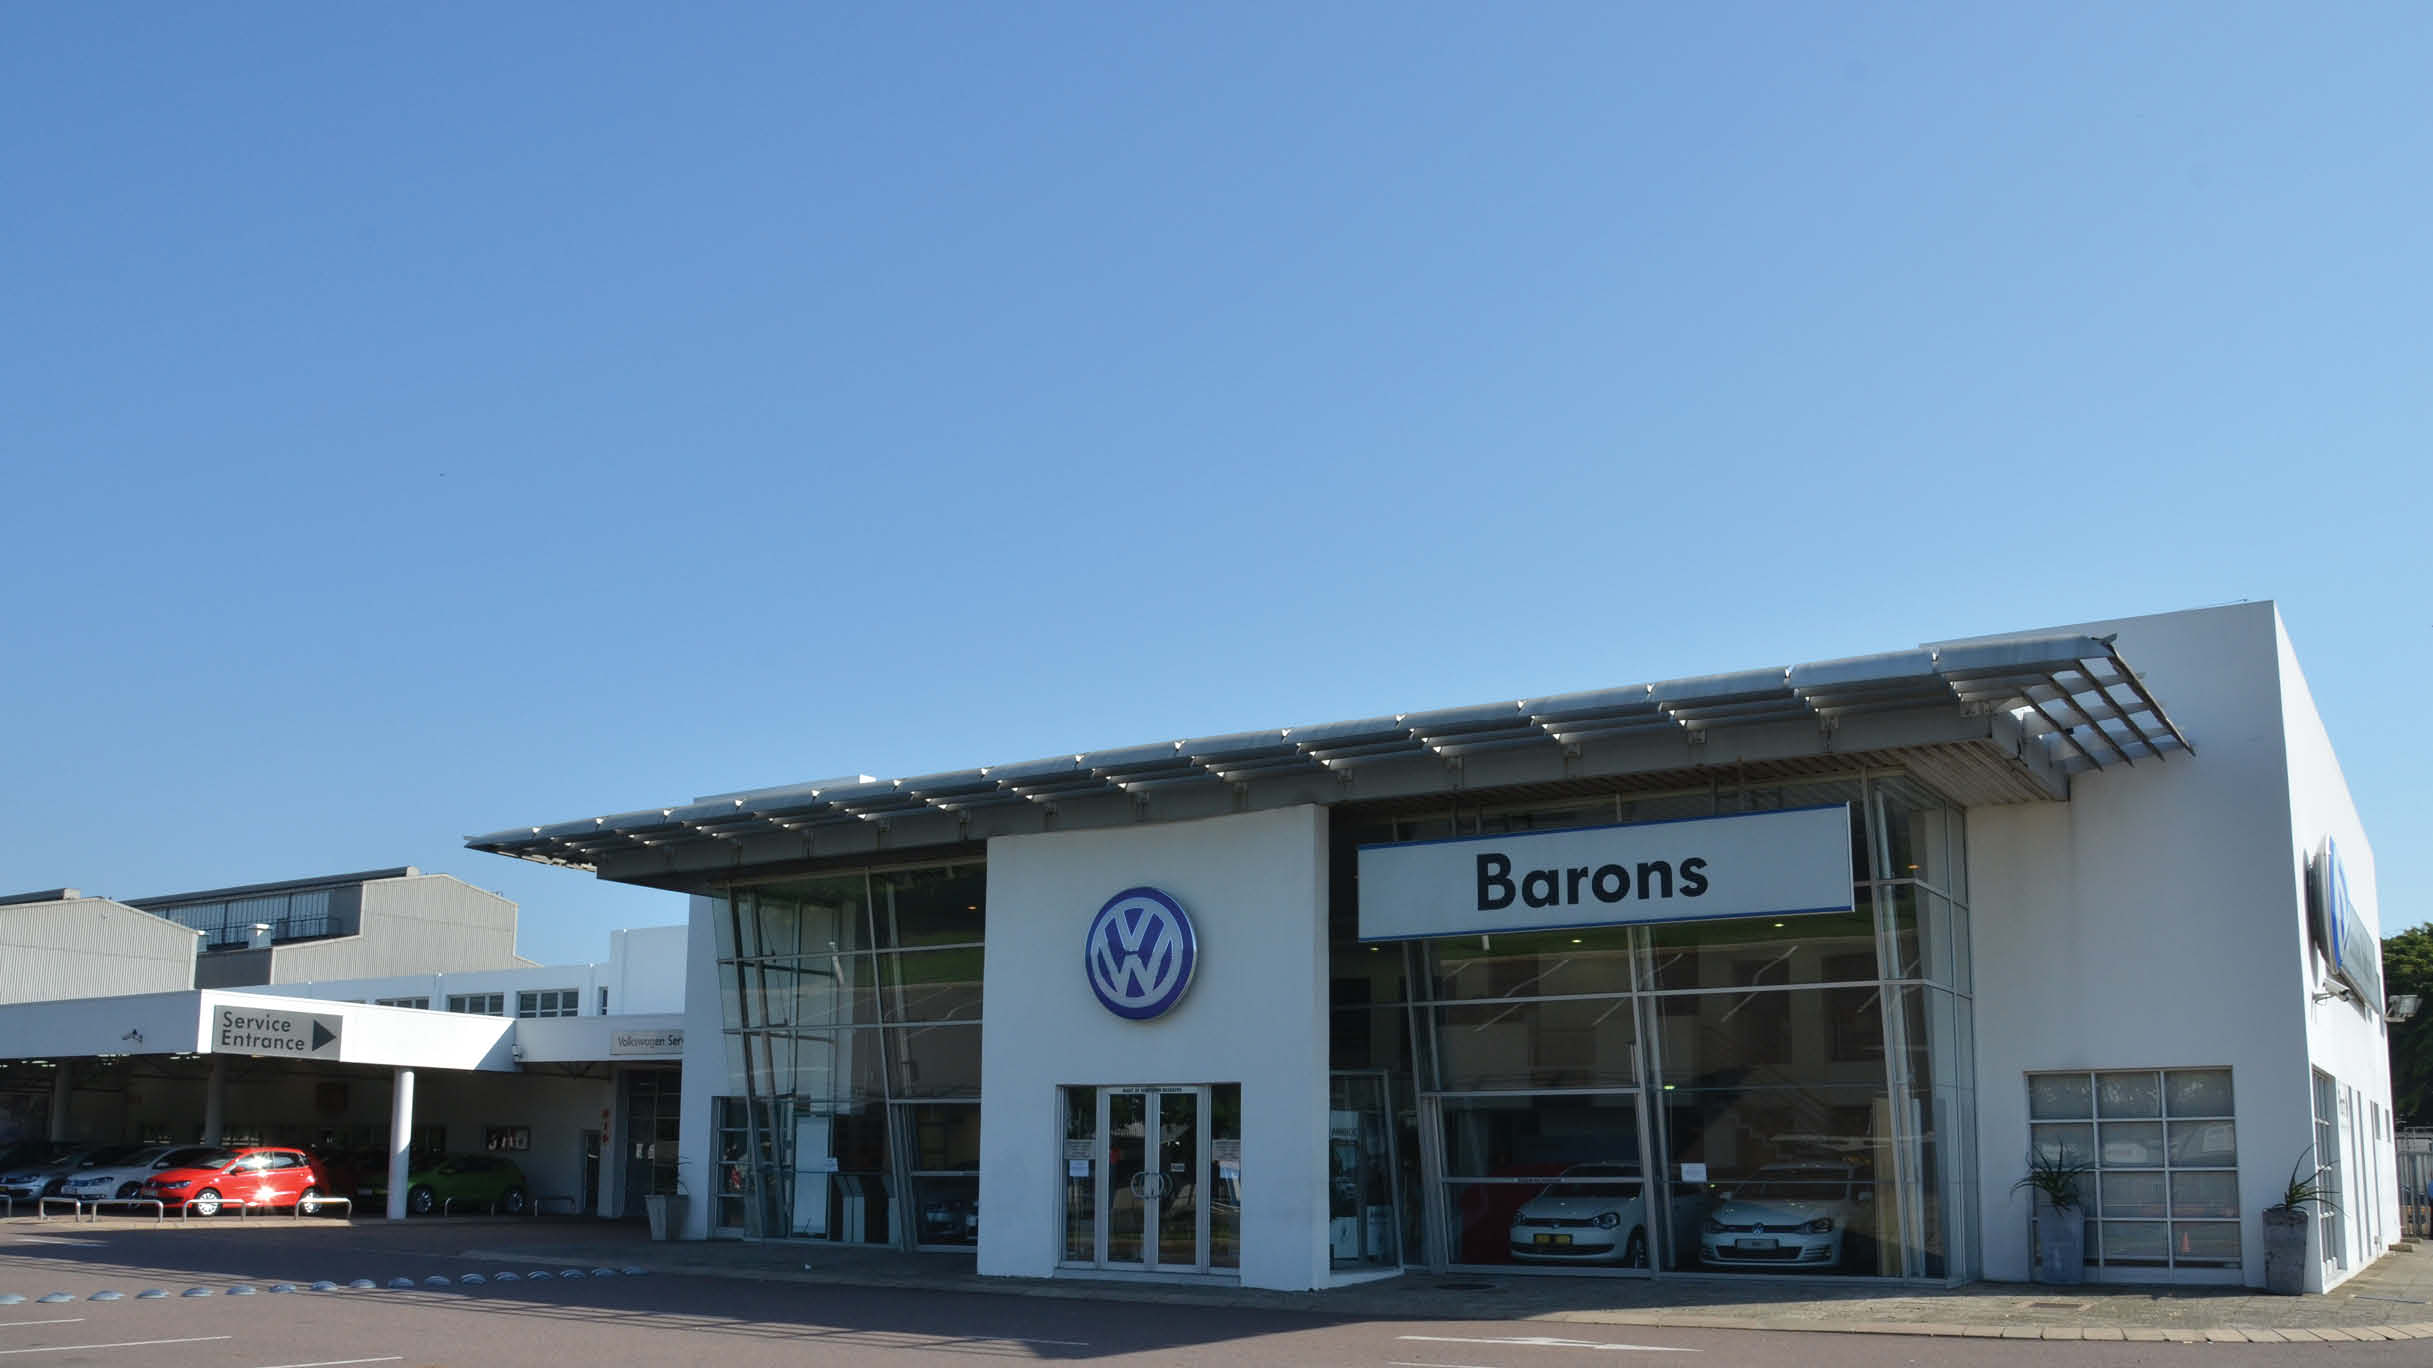 Barons Durban | Volkswagen South African Dealership